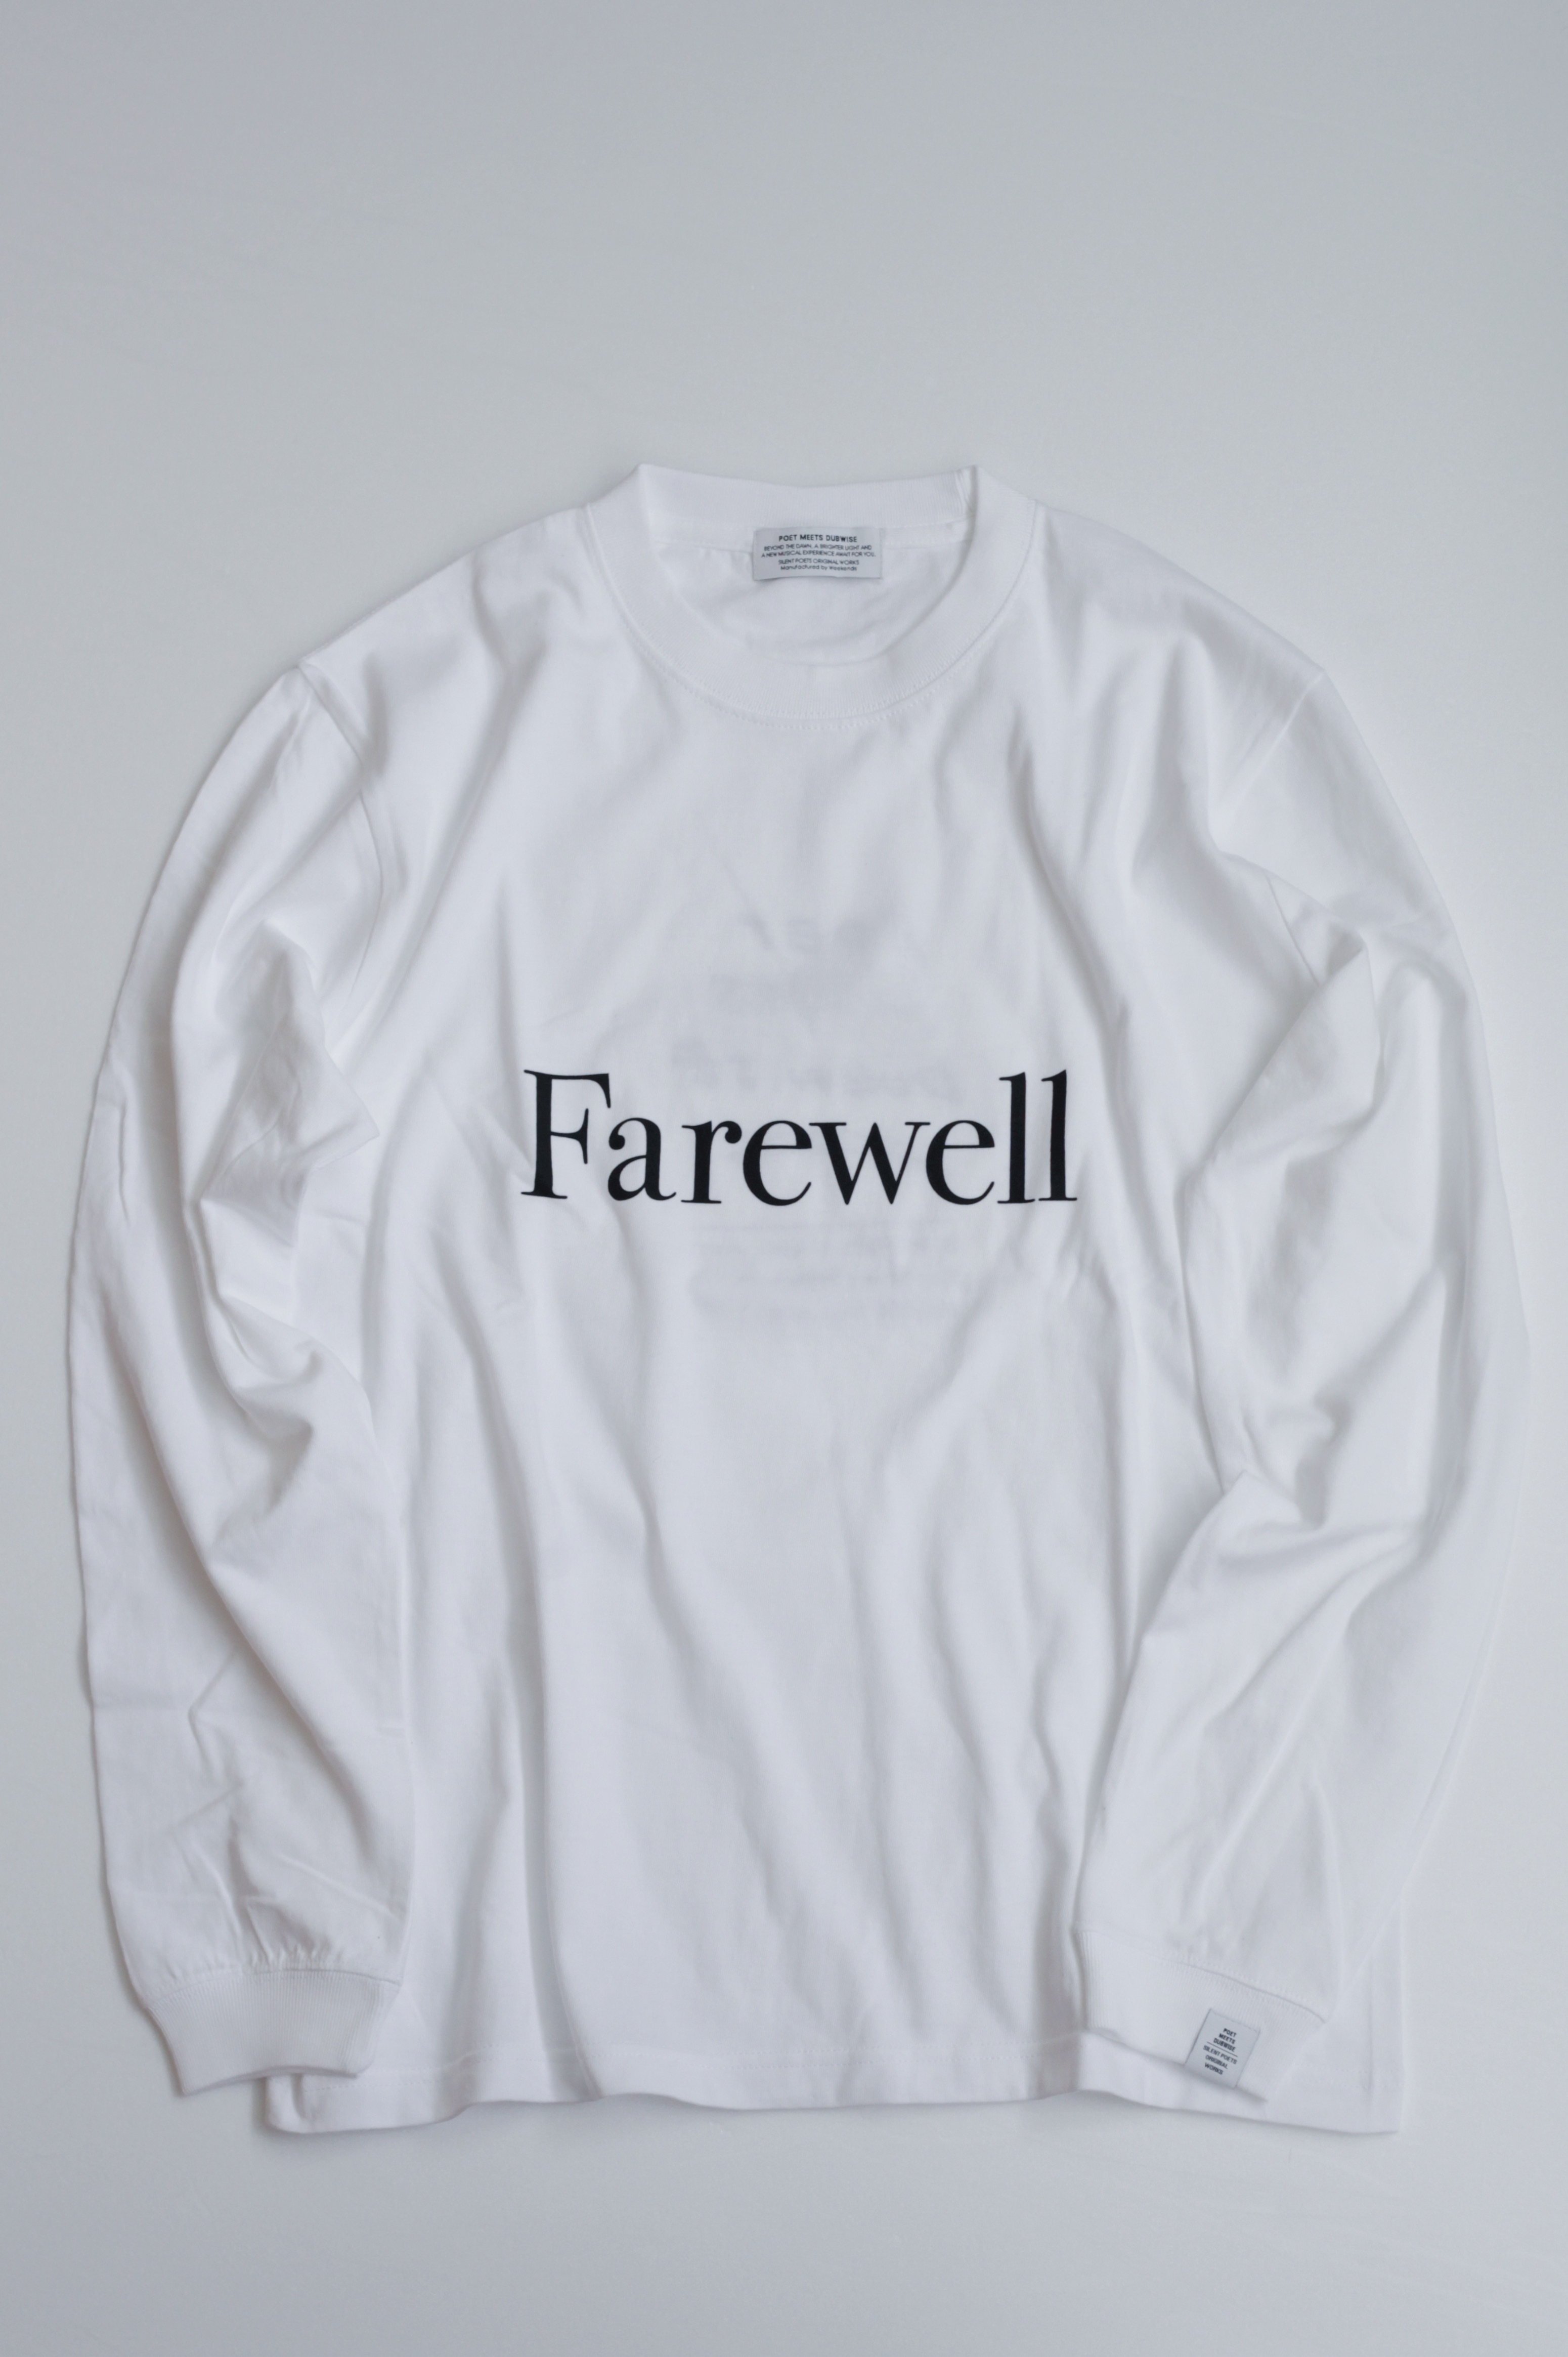 【POET MEETS DUBWISE(ポエトミーツダブワイズ)】 Farewell Long Sleeve T-Shirt